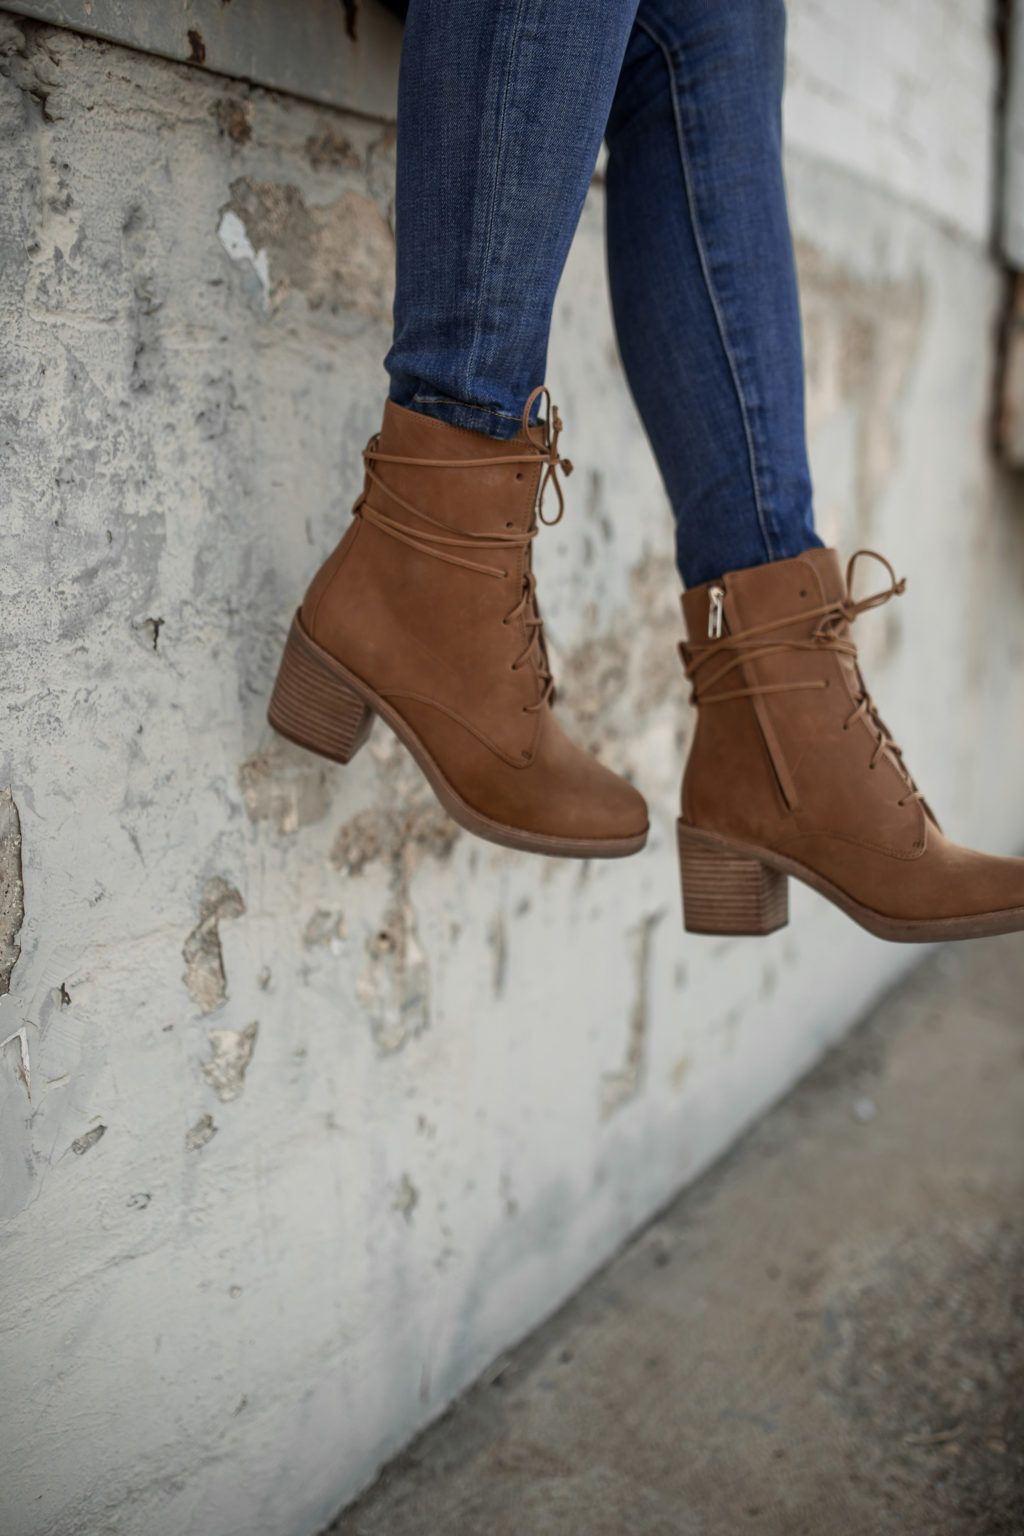 85c380a8ca0 My Favorite Lace-Up Boots for Fall | SHOE CRUSH | Shoes, Boots, Ugg ...